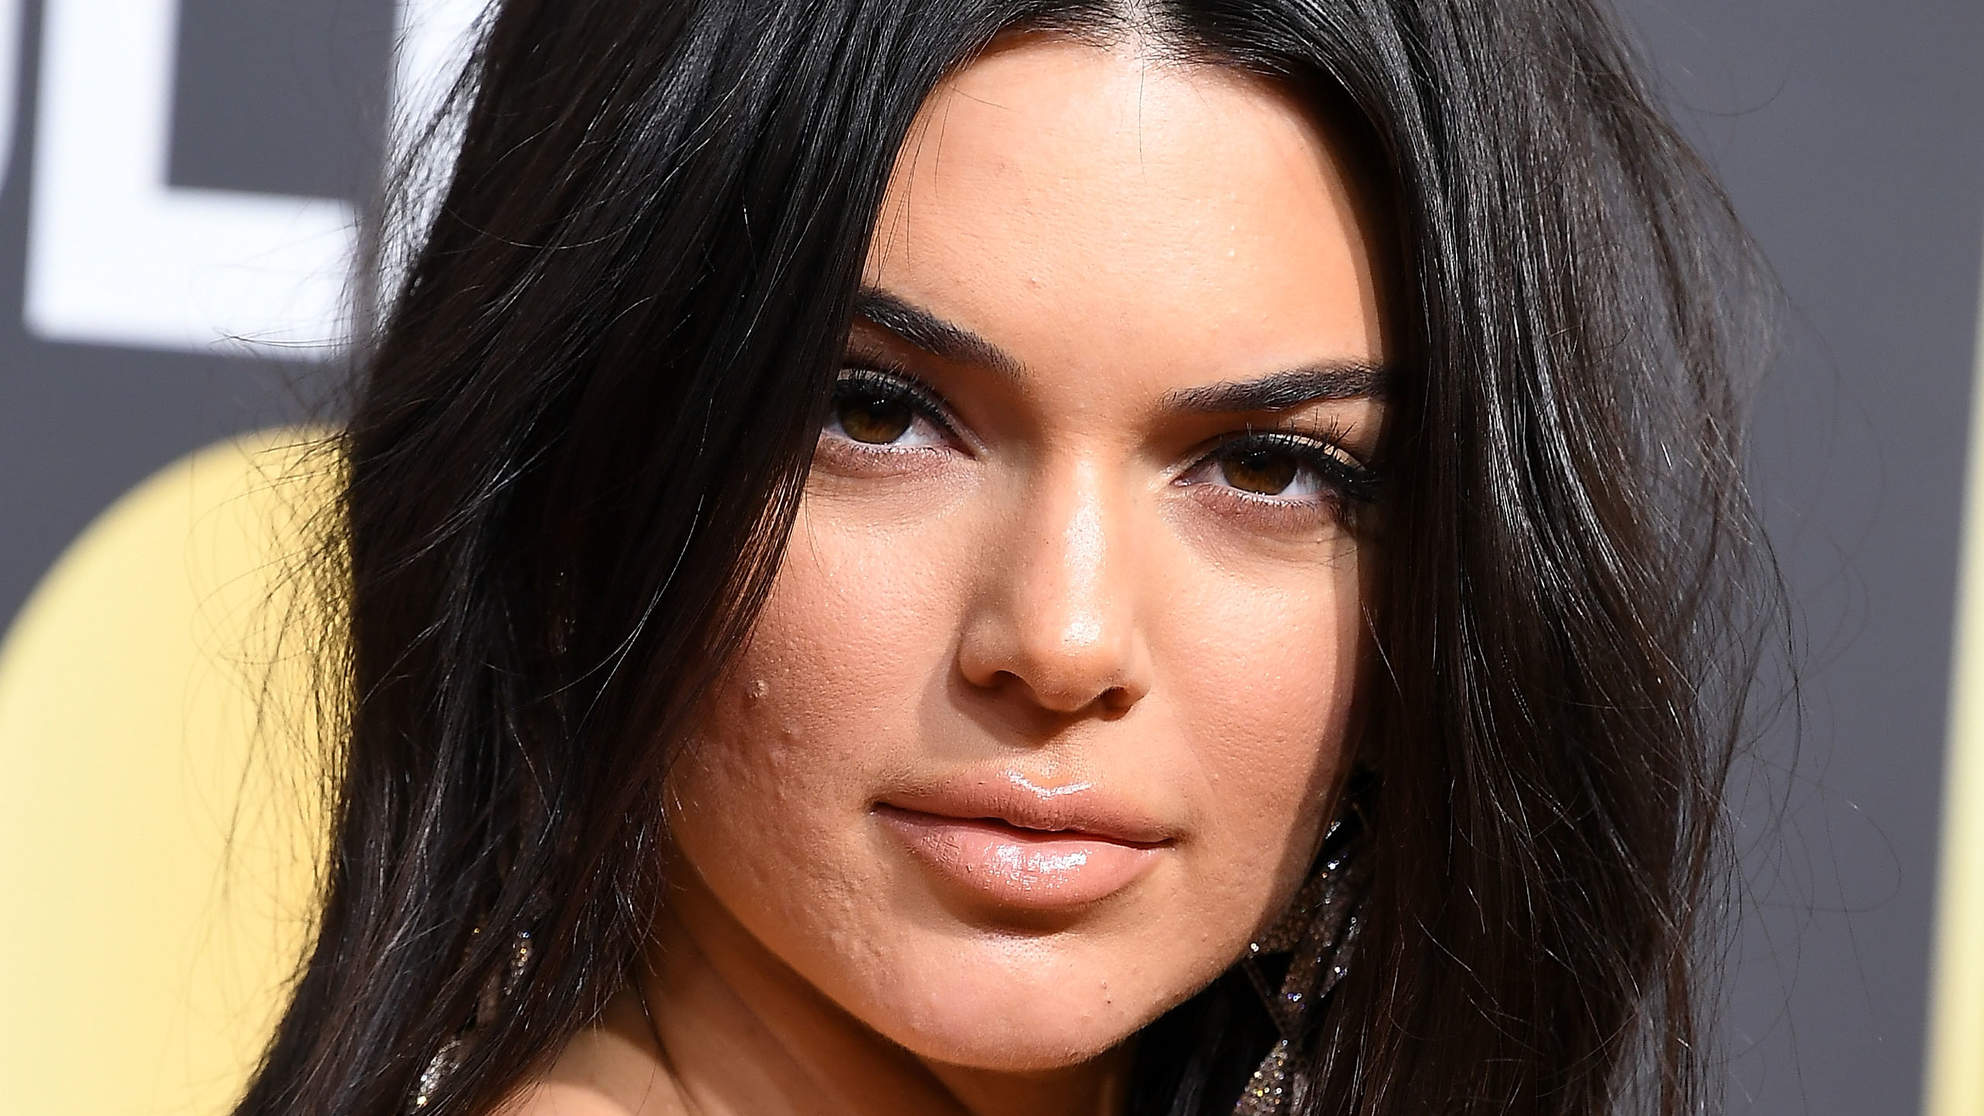 Kendall Jenner Was Hospitalized Before Attending Vanity Fair Oscars Party: Report